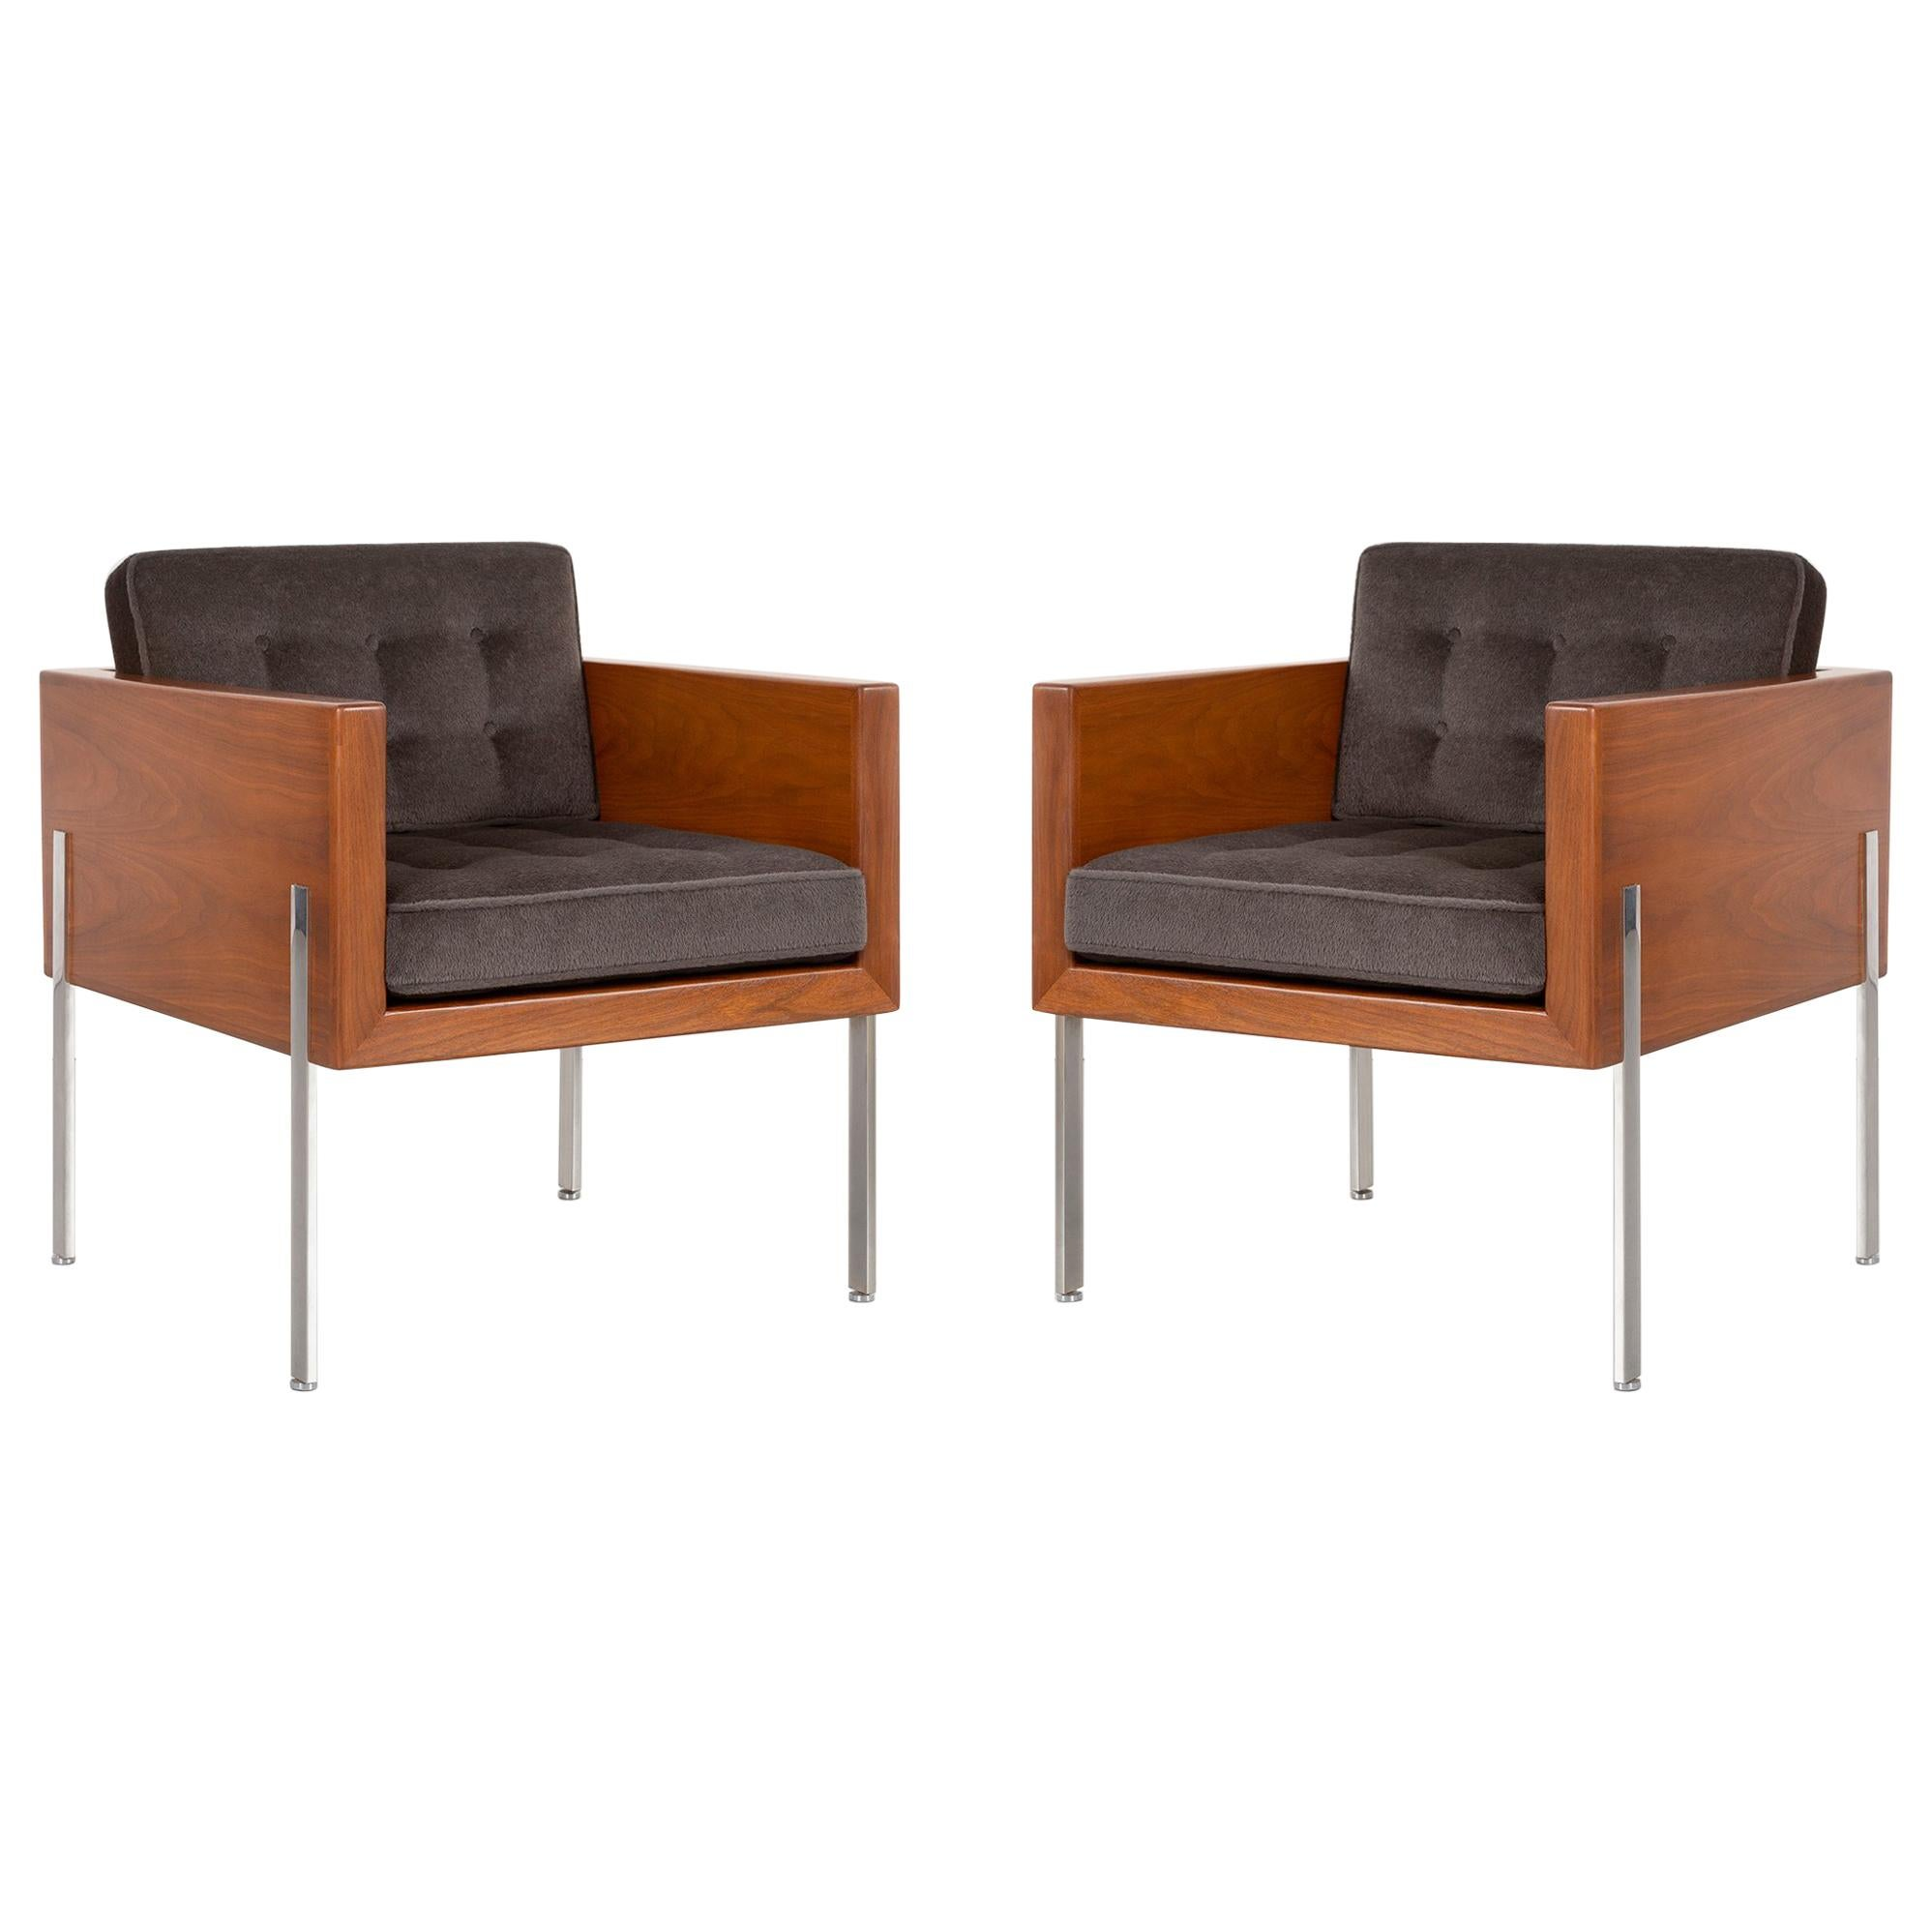 Cube Chairs Pair Of Mid Century Modern Harvey Probber Architectural Series Cube Chairs